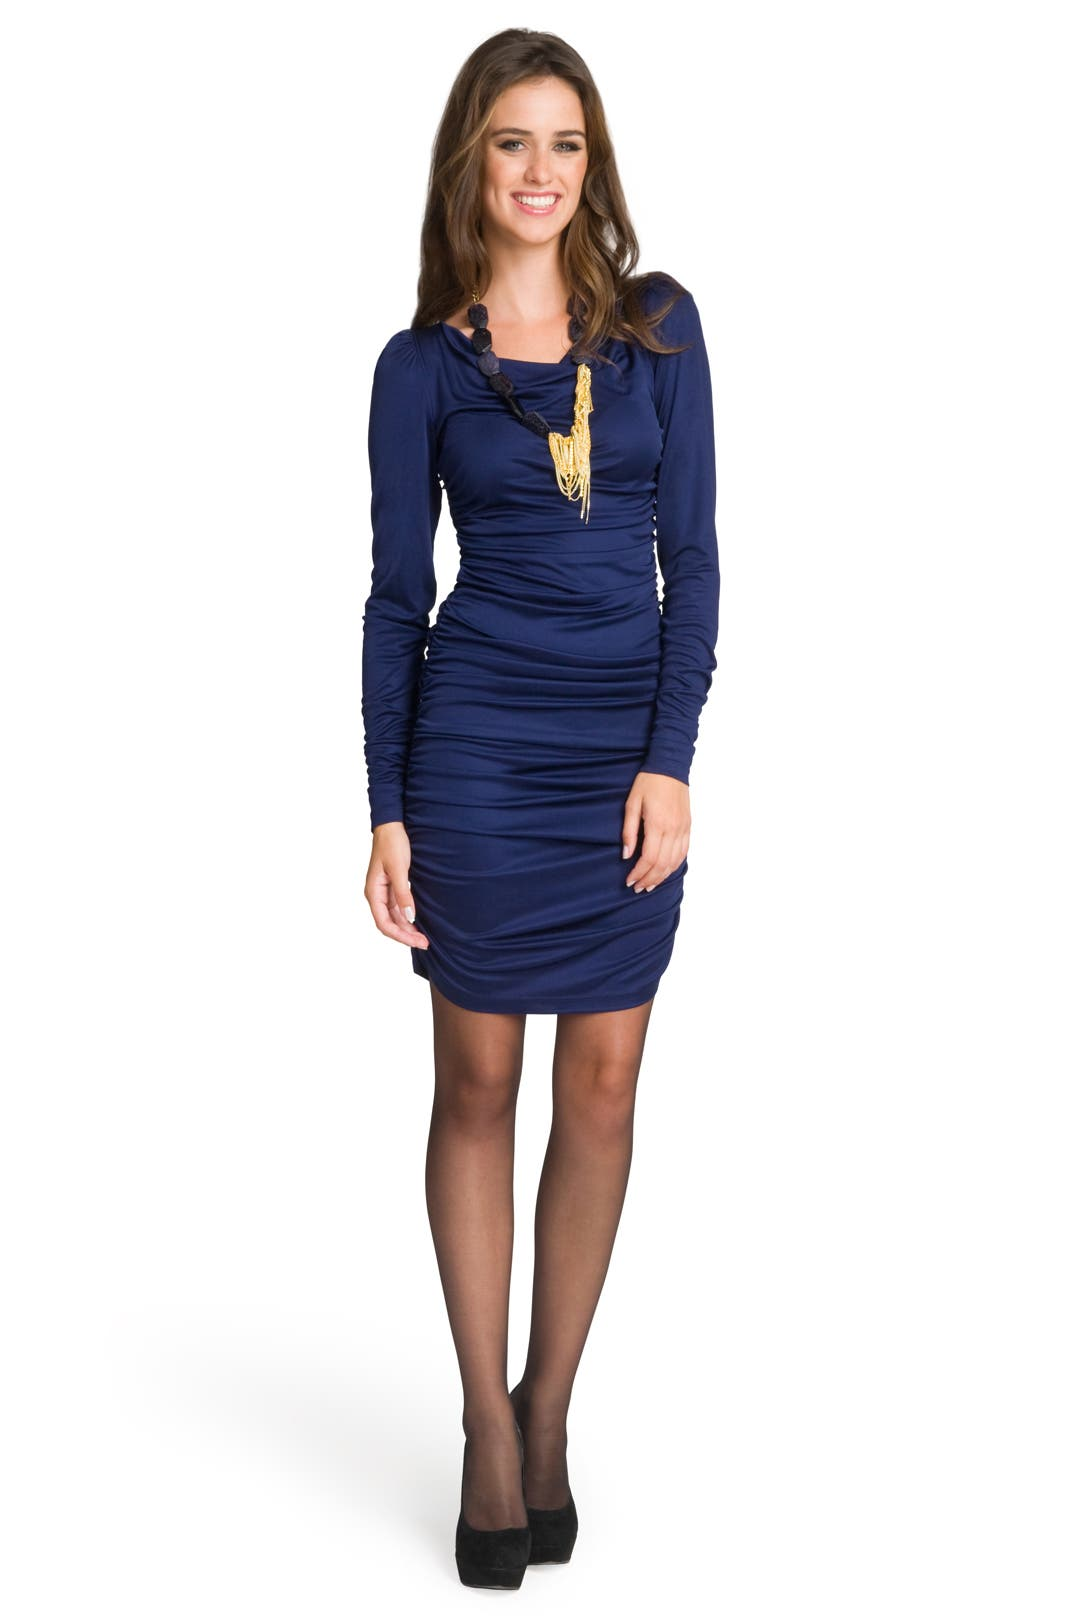 Sapphire Sophisticate dress by Christian Siriano